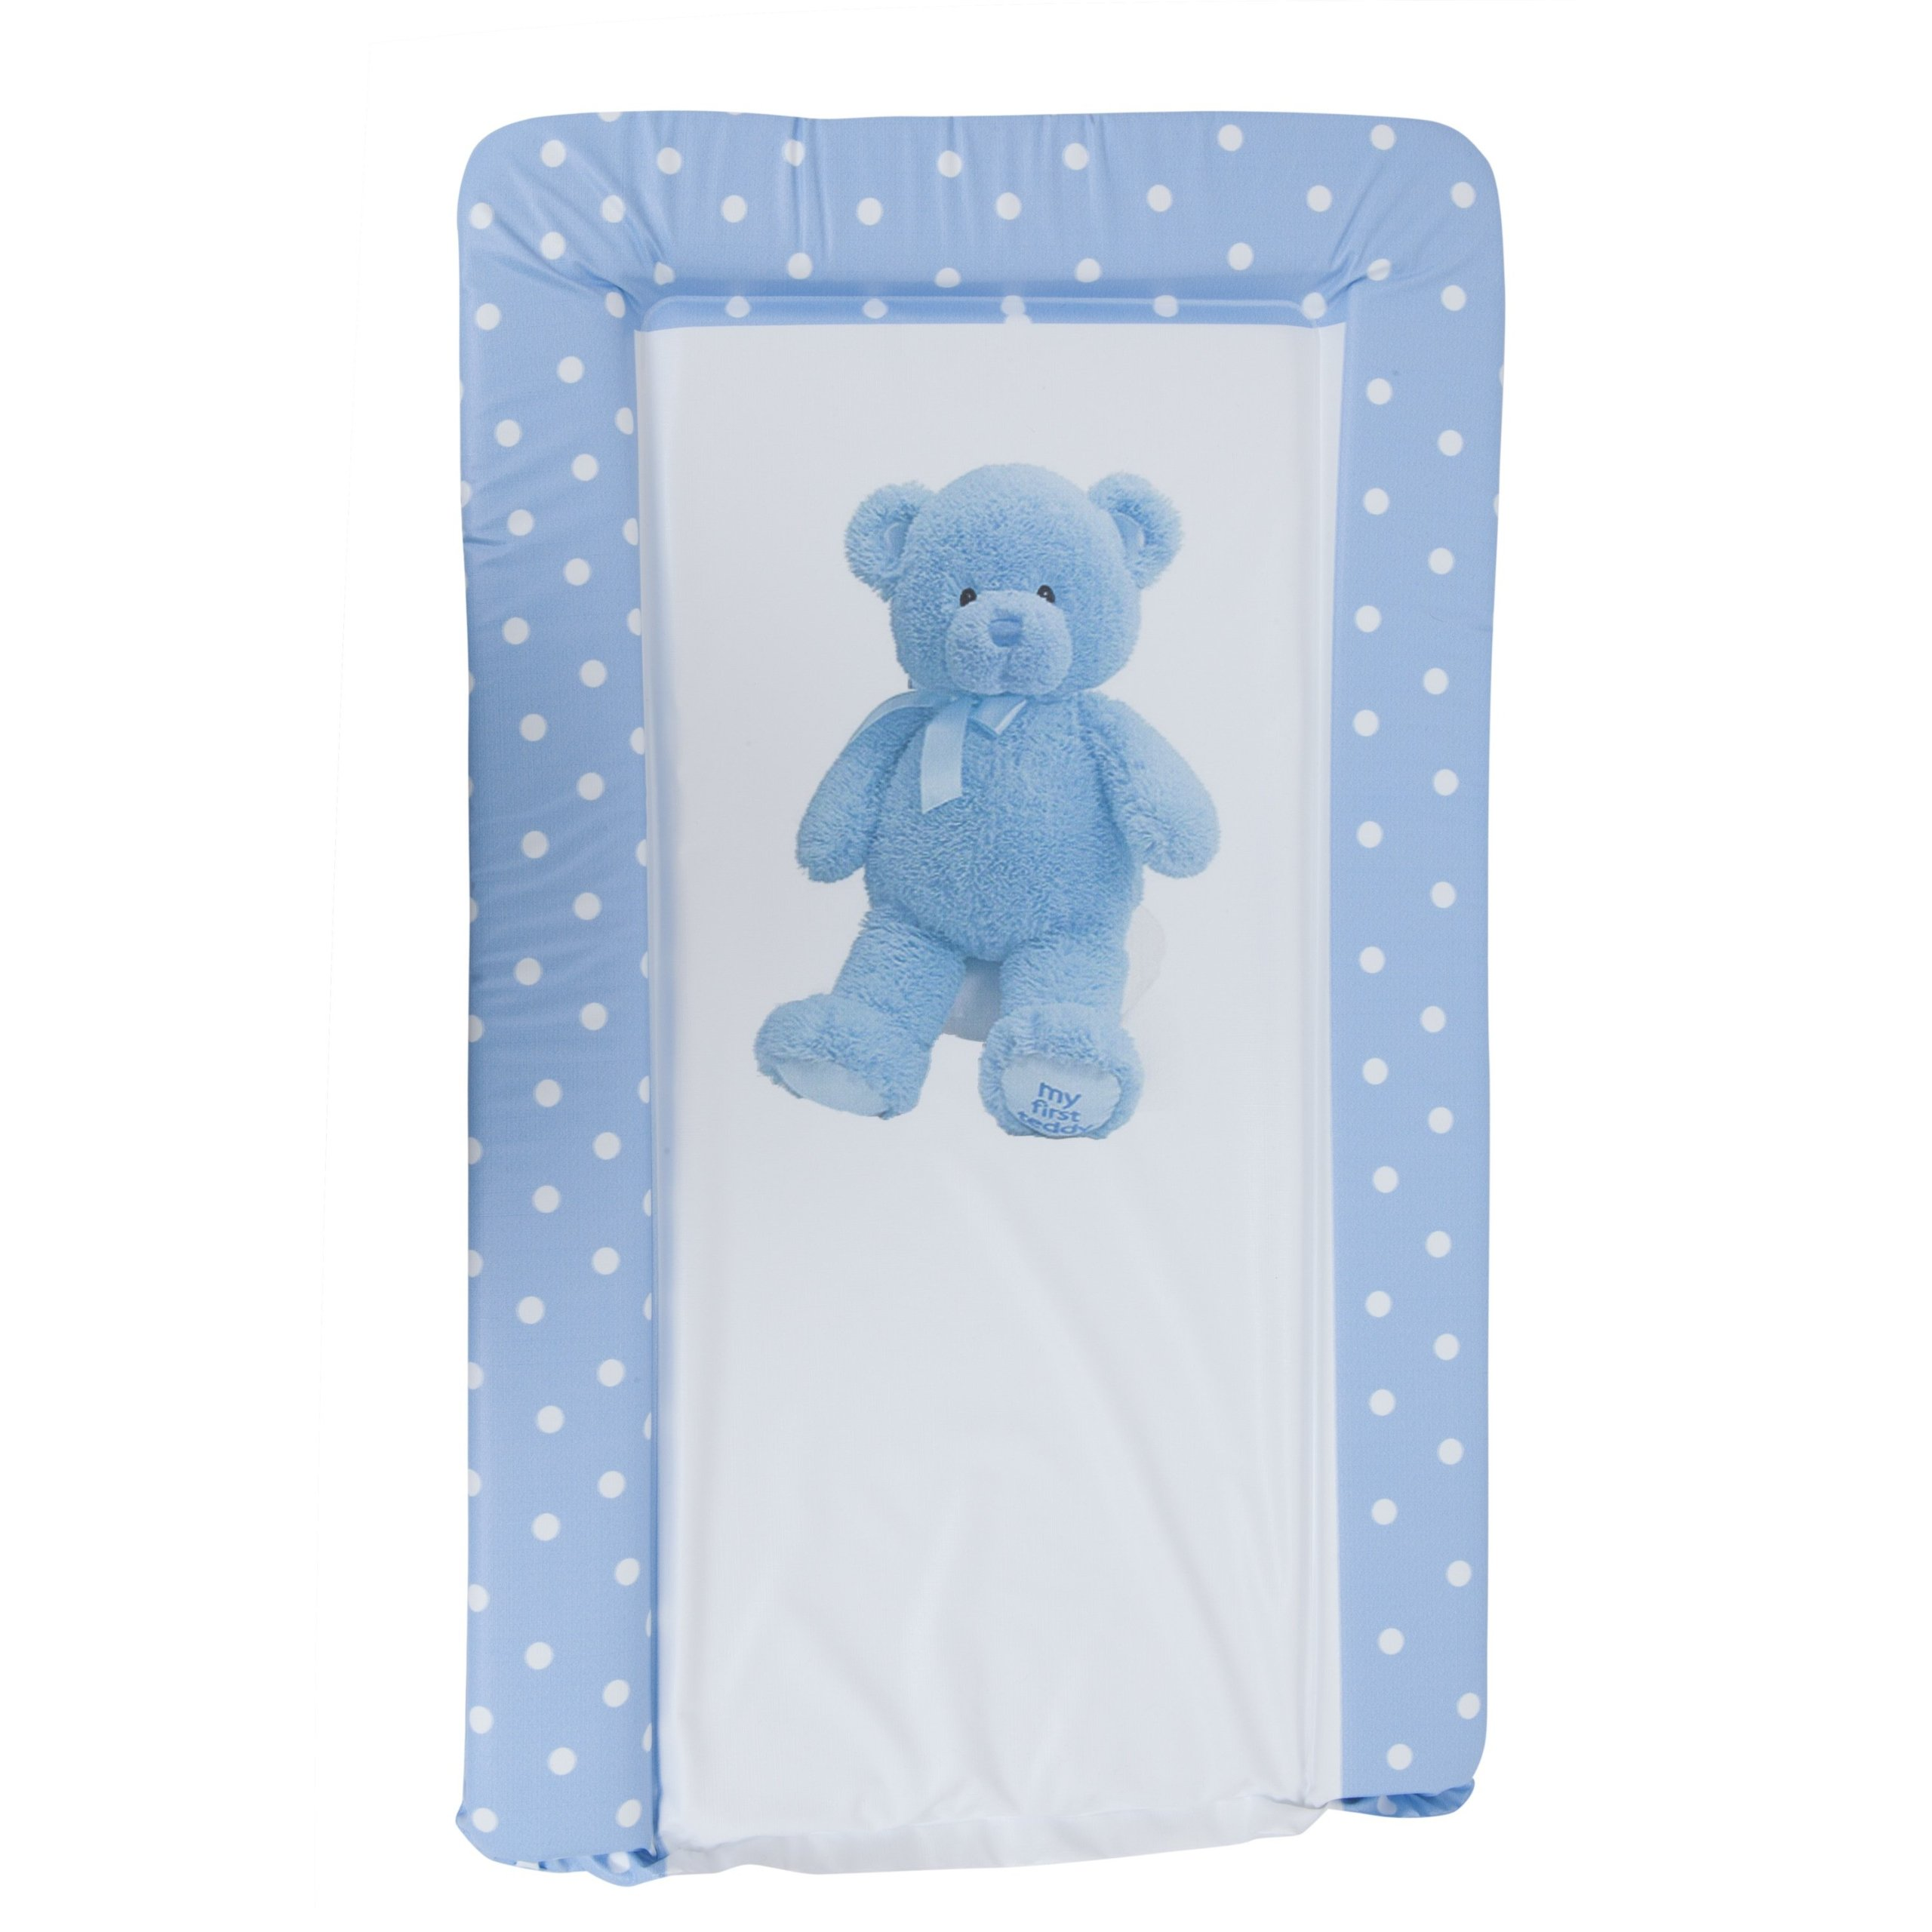 Baby Teddy Bear Deluxe Padded Easy Clean Changing Mat (Boy & Girl Options) (19in x 31in) (Blue)